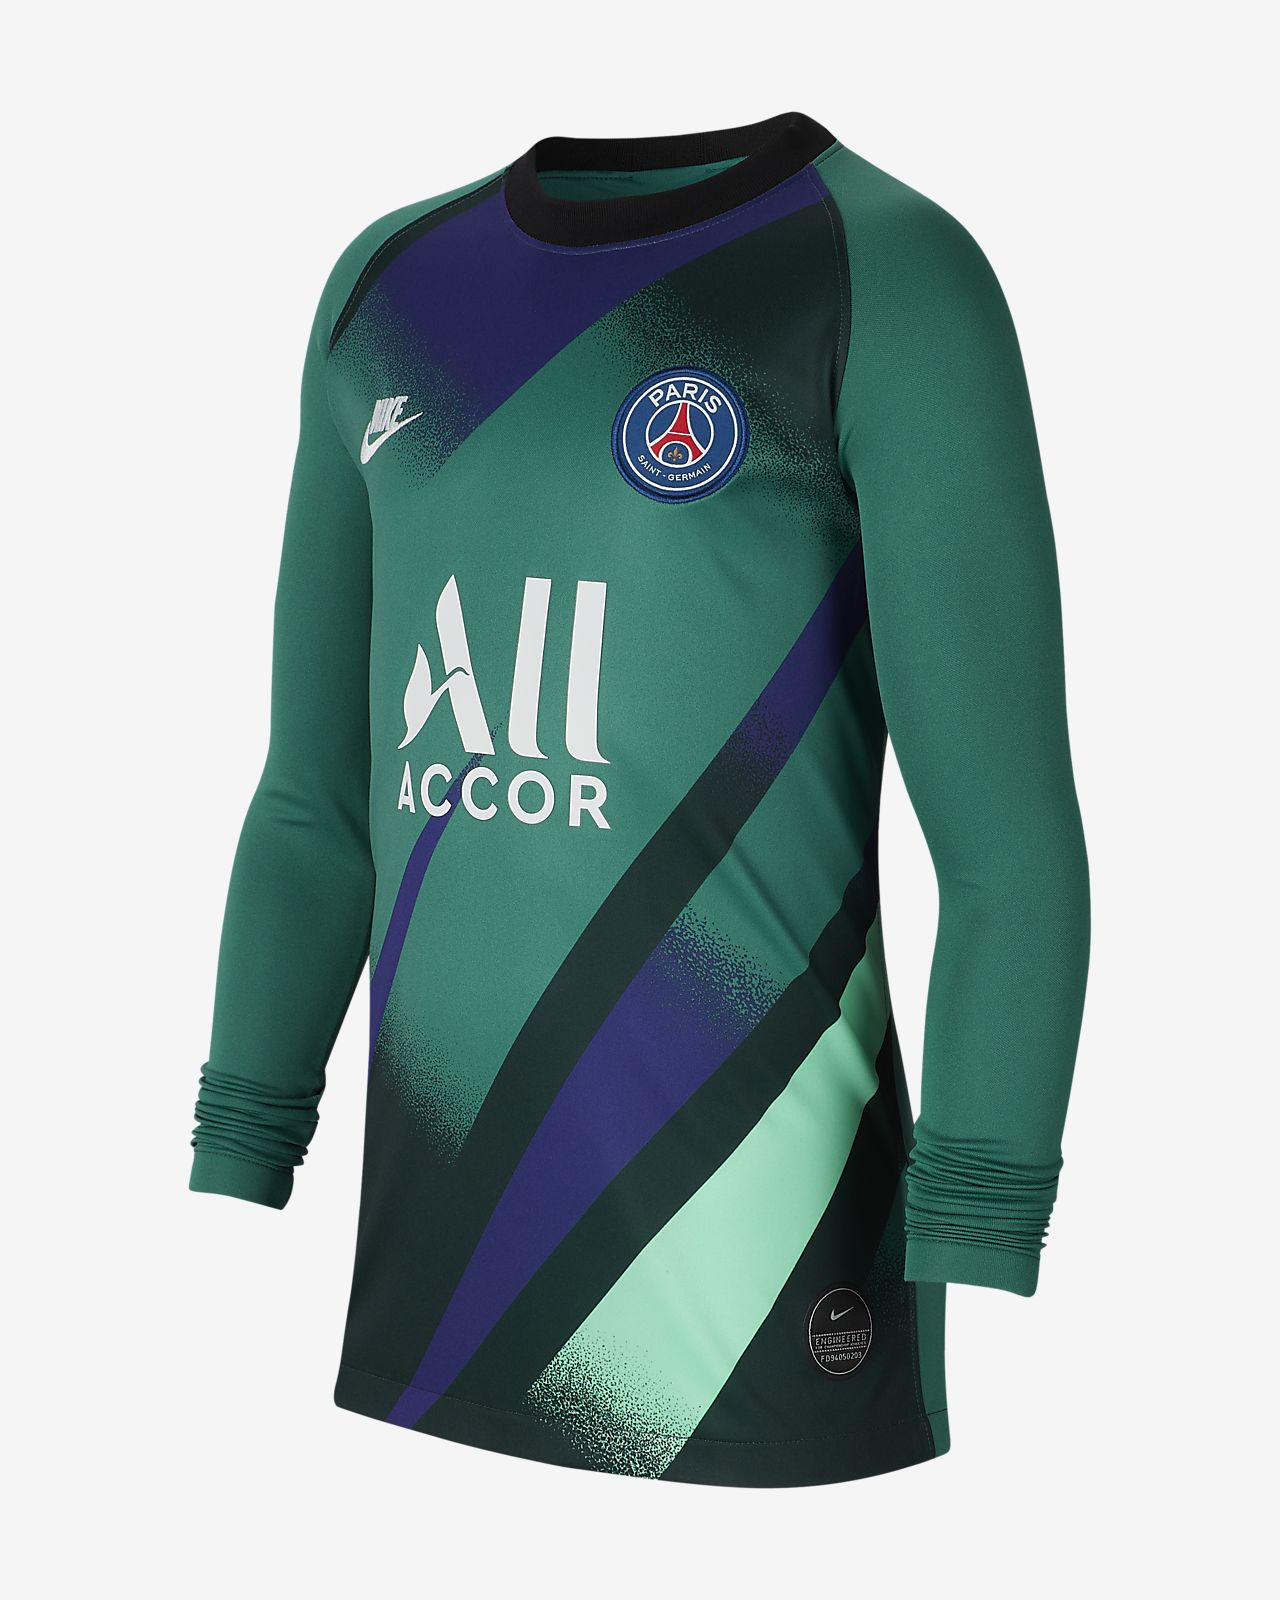 Paris Saint-Germain 2019/20 Stadium Goalkeeper Third Older Kids' Football Shirt